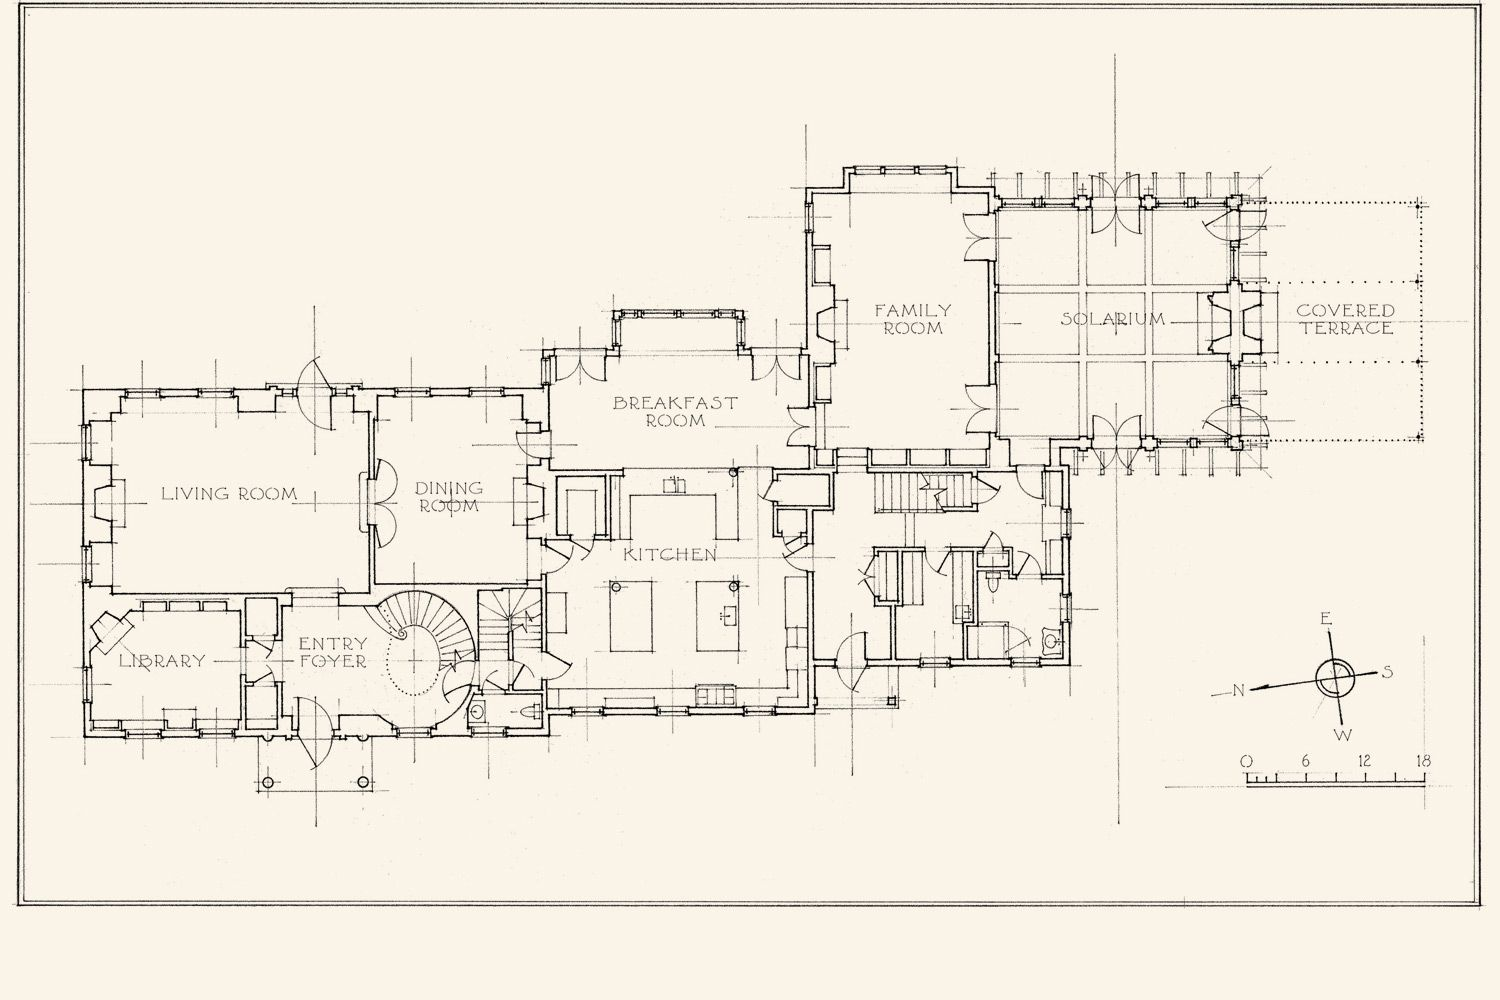 Pin On Floor Plans And Elevations